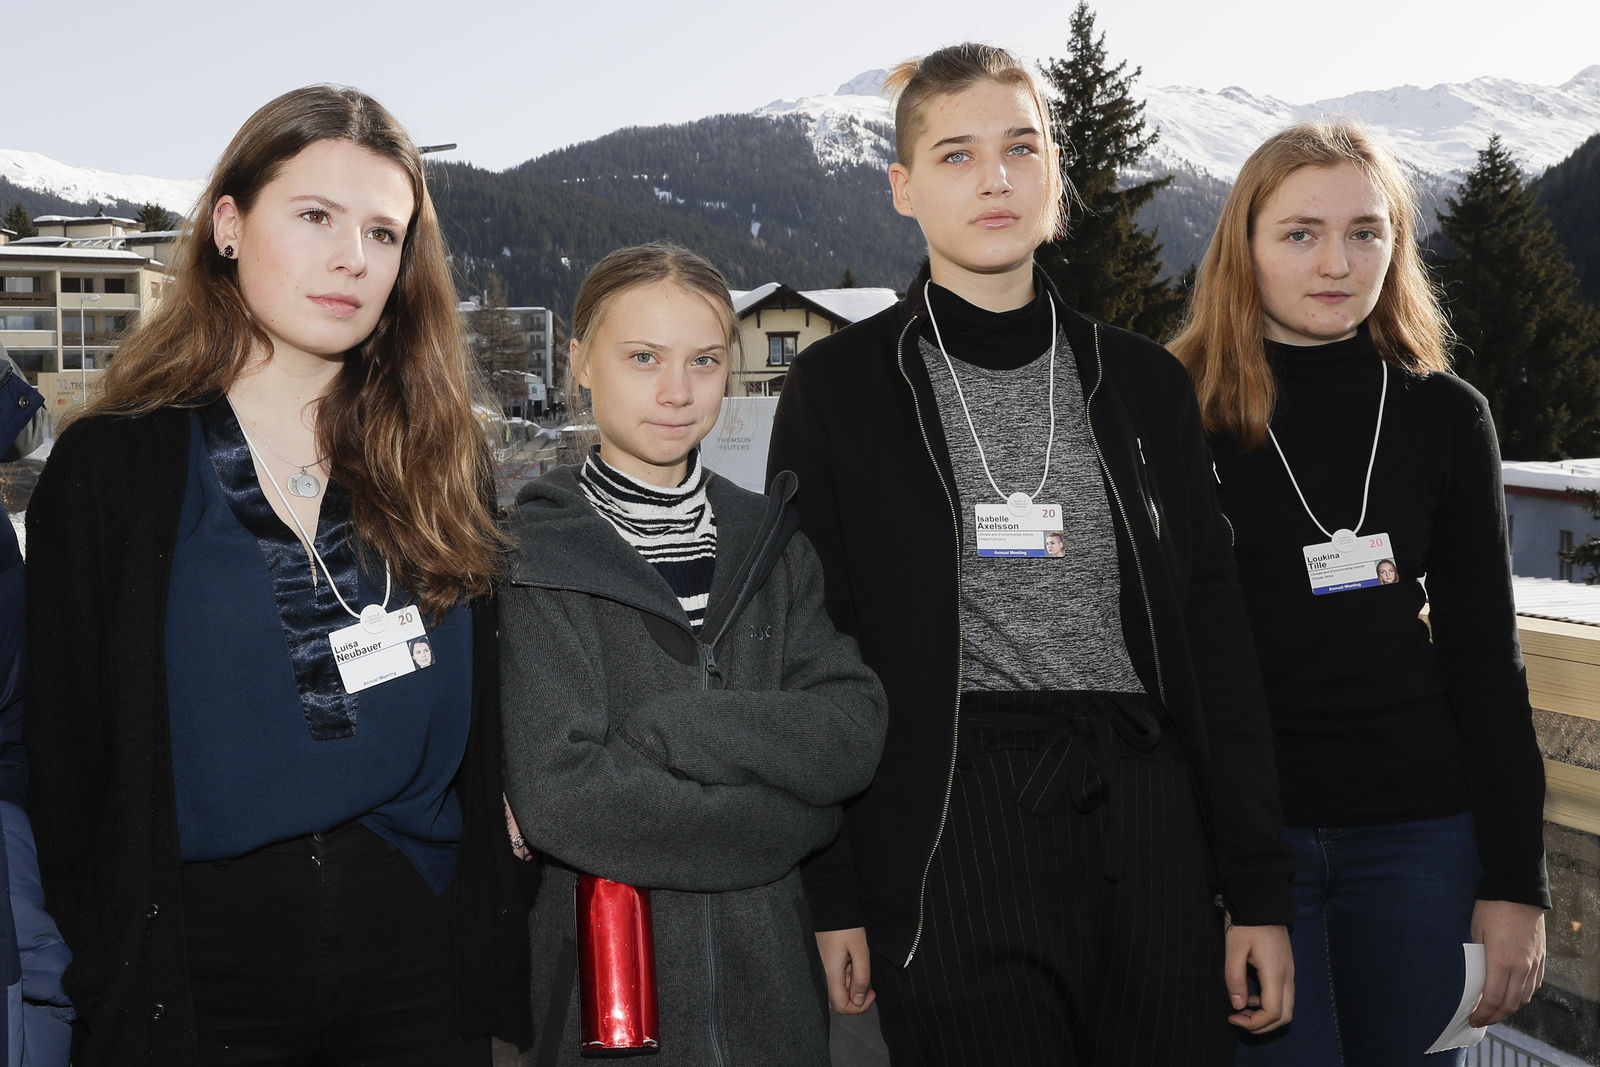 Climate activists Luisa Neubauer, Greta Thunberg, Isabelle Axelsson and Loukina Tille, from left, arrive for a news conference in Davos, Switzerland, Friday, Jan. 24, 2020.{ } (AP Photo/Markus Schreiber)